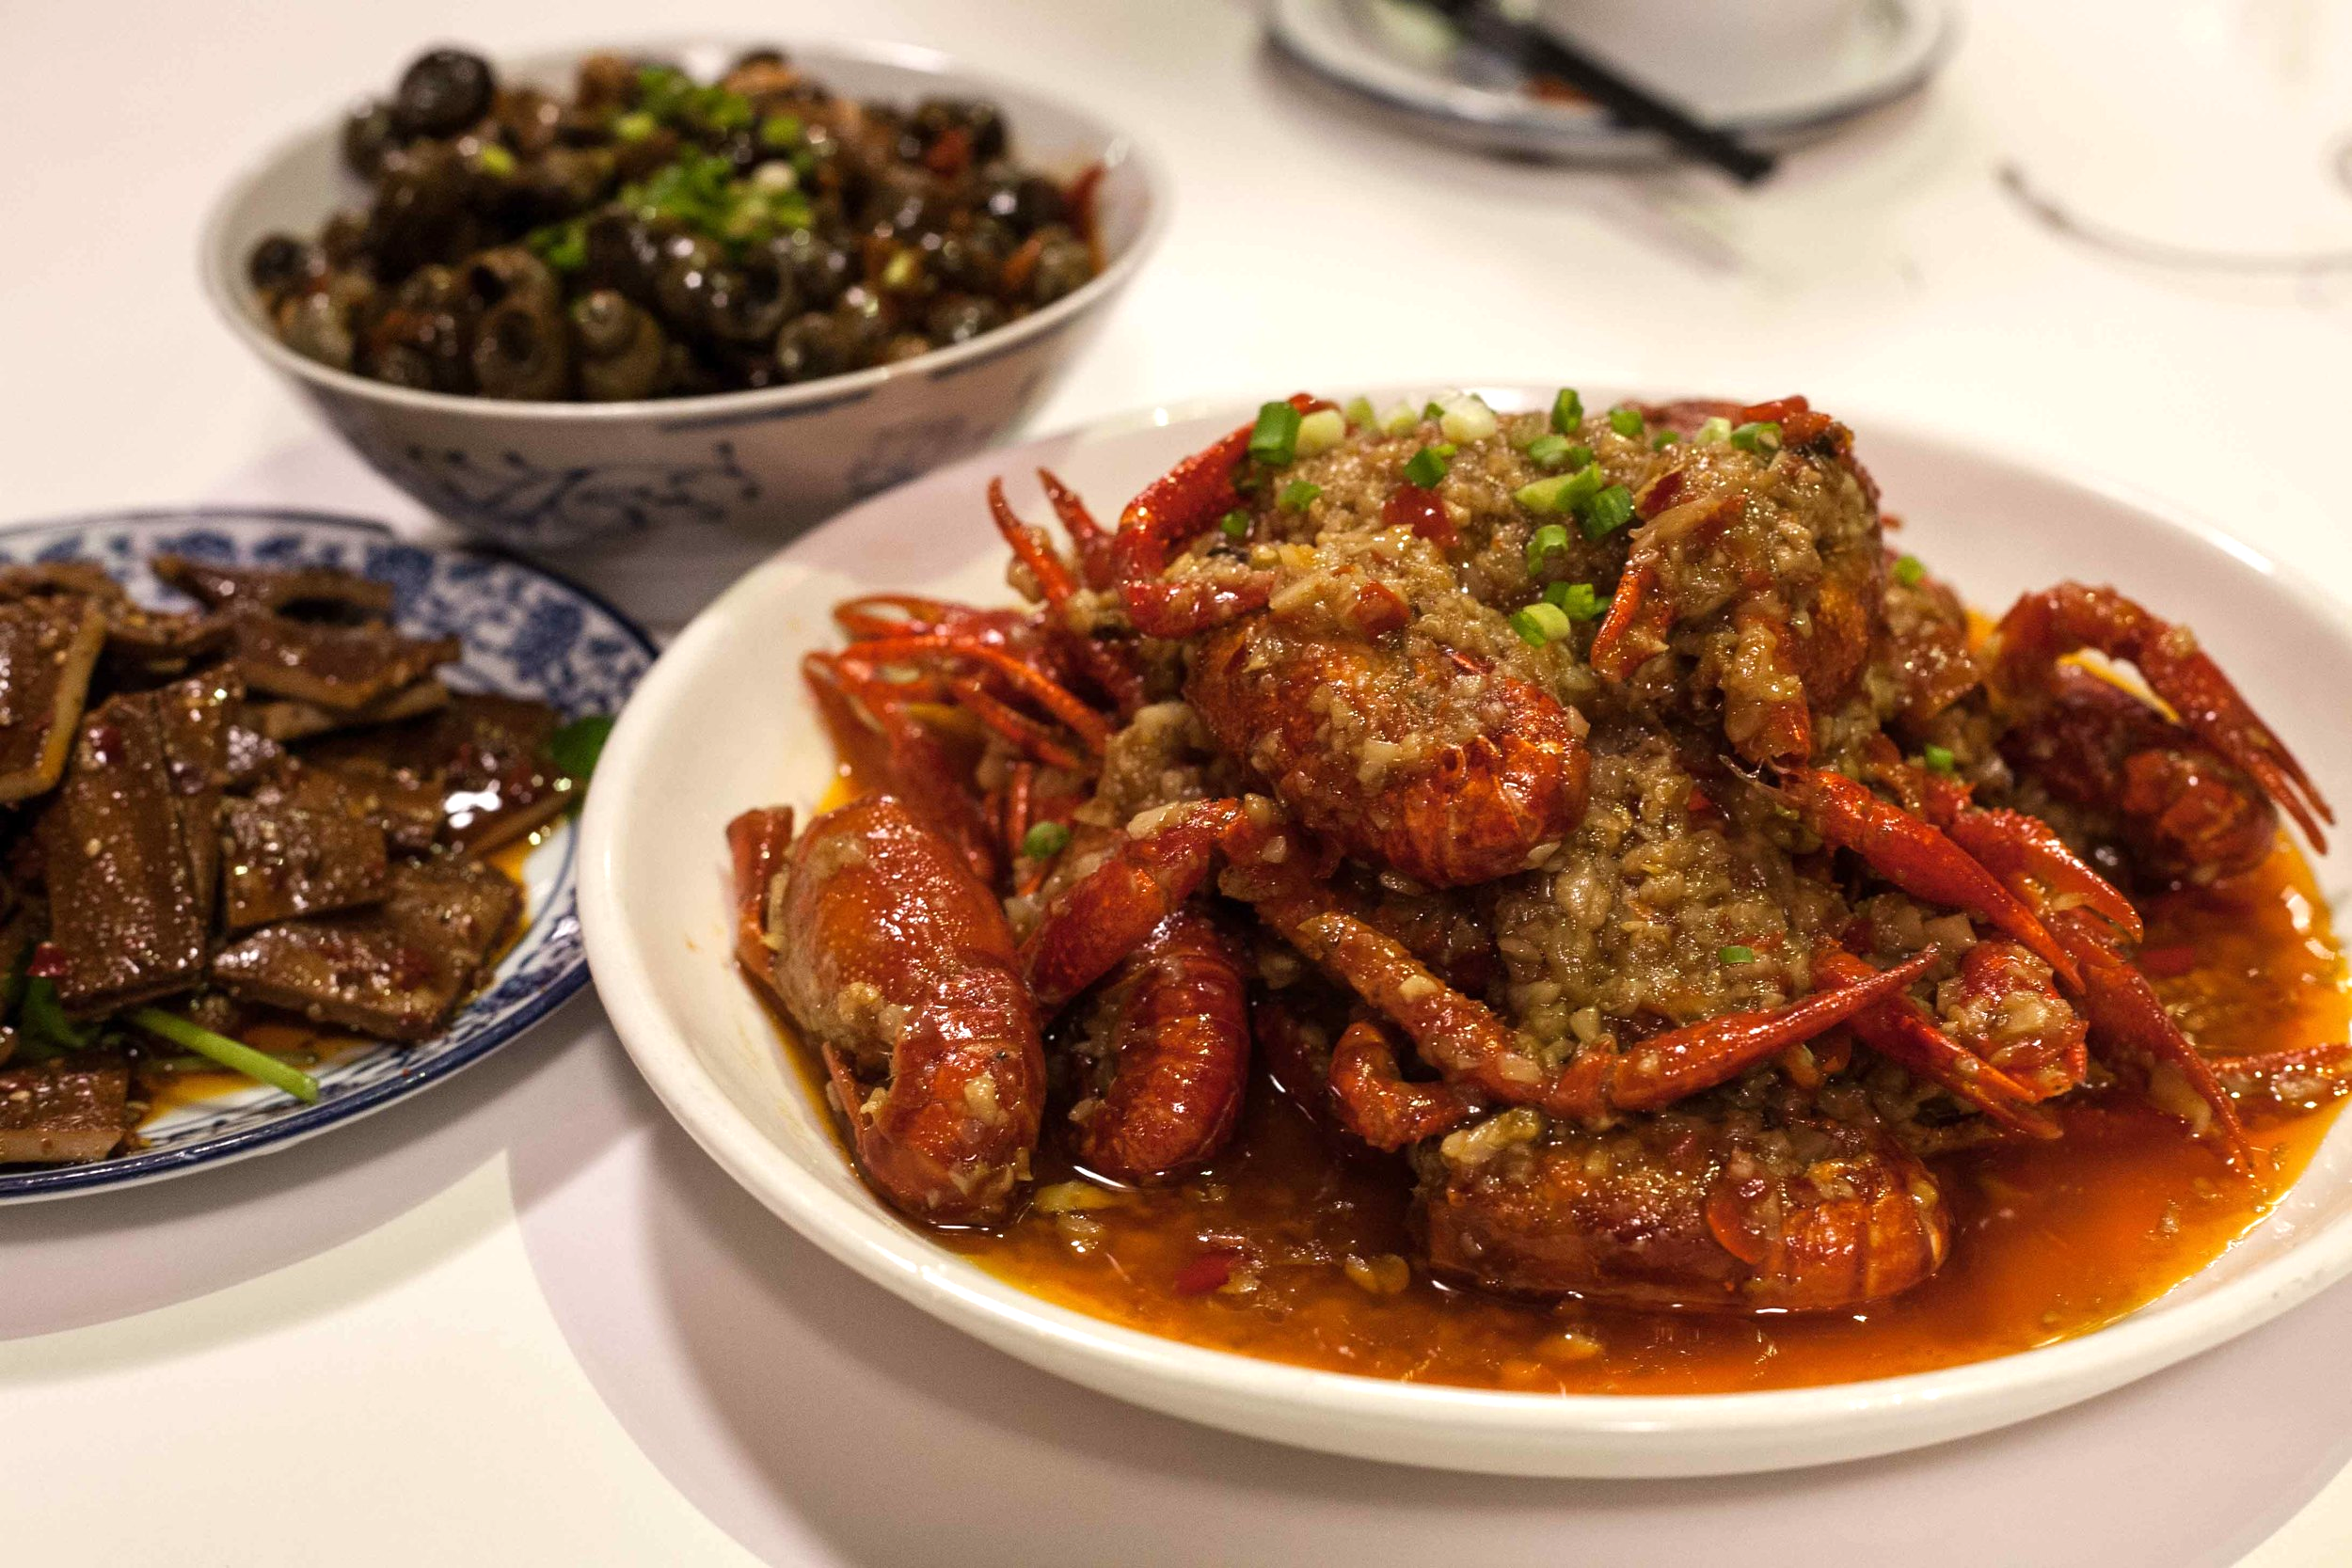 Clockwise from front - Stir-fried whole crawfish with garlic and chili served with smoked bean curd and sea snails